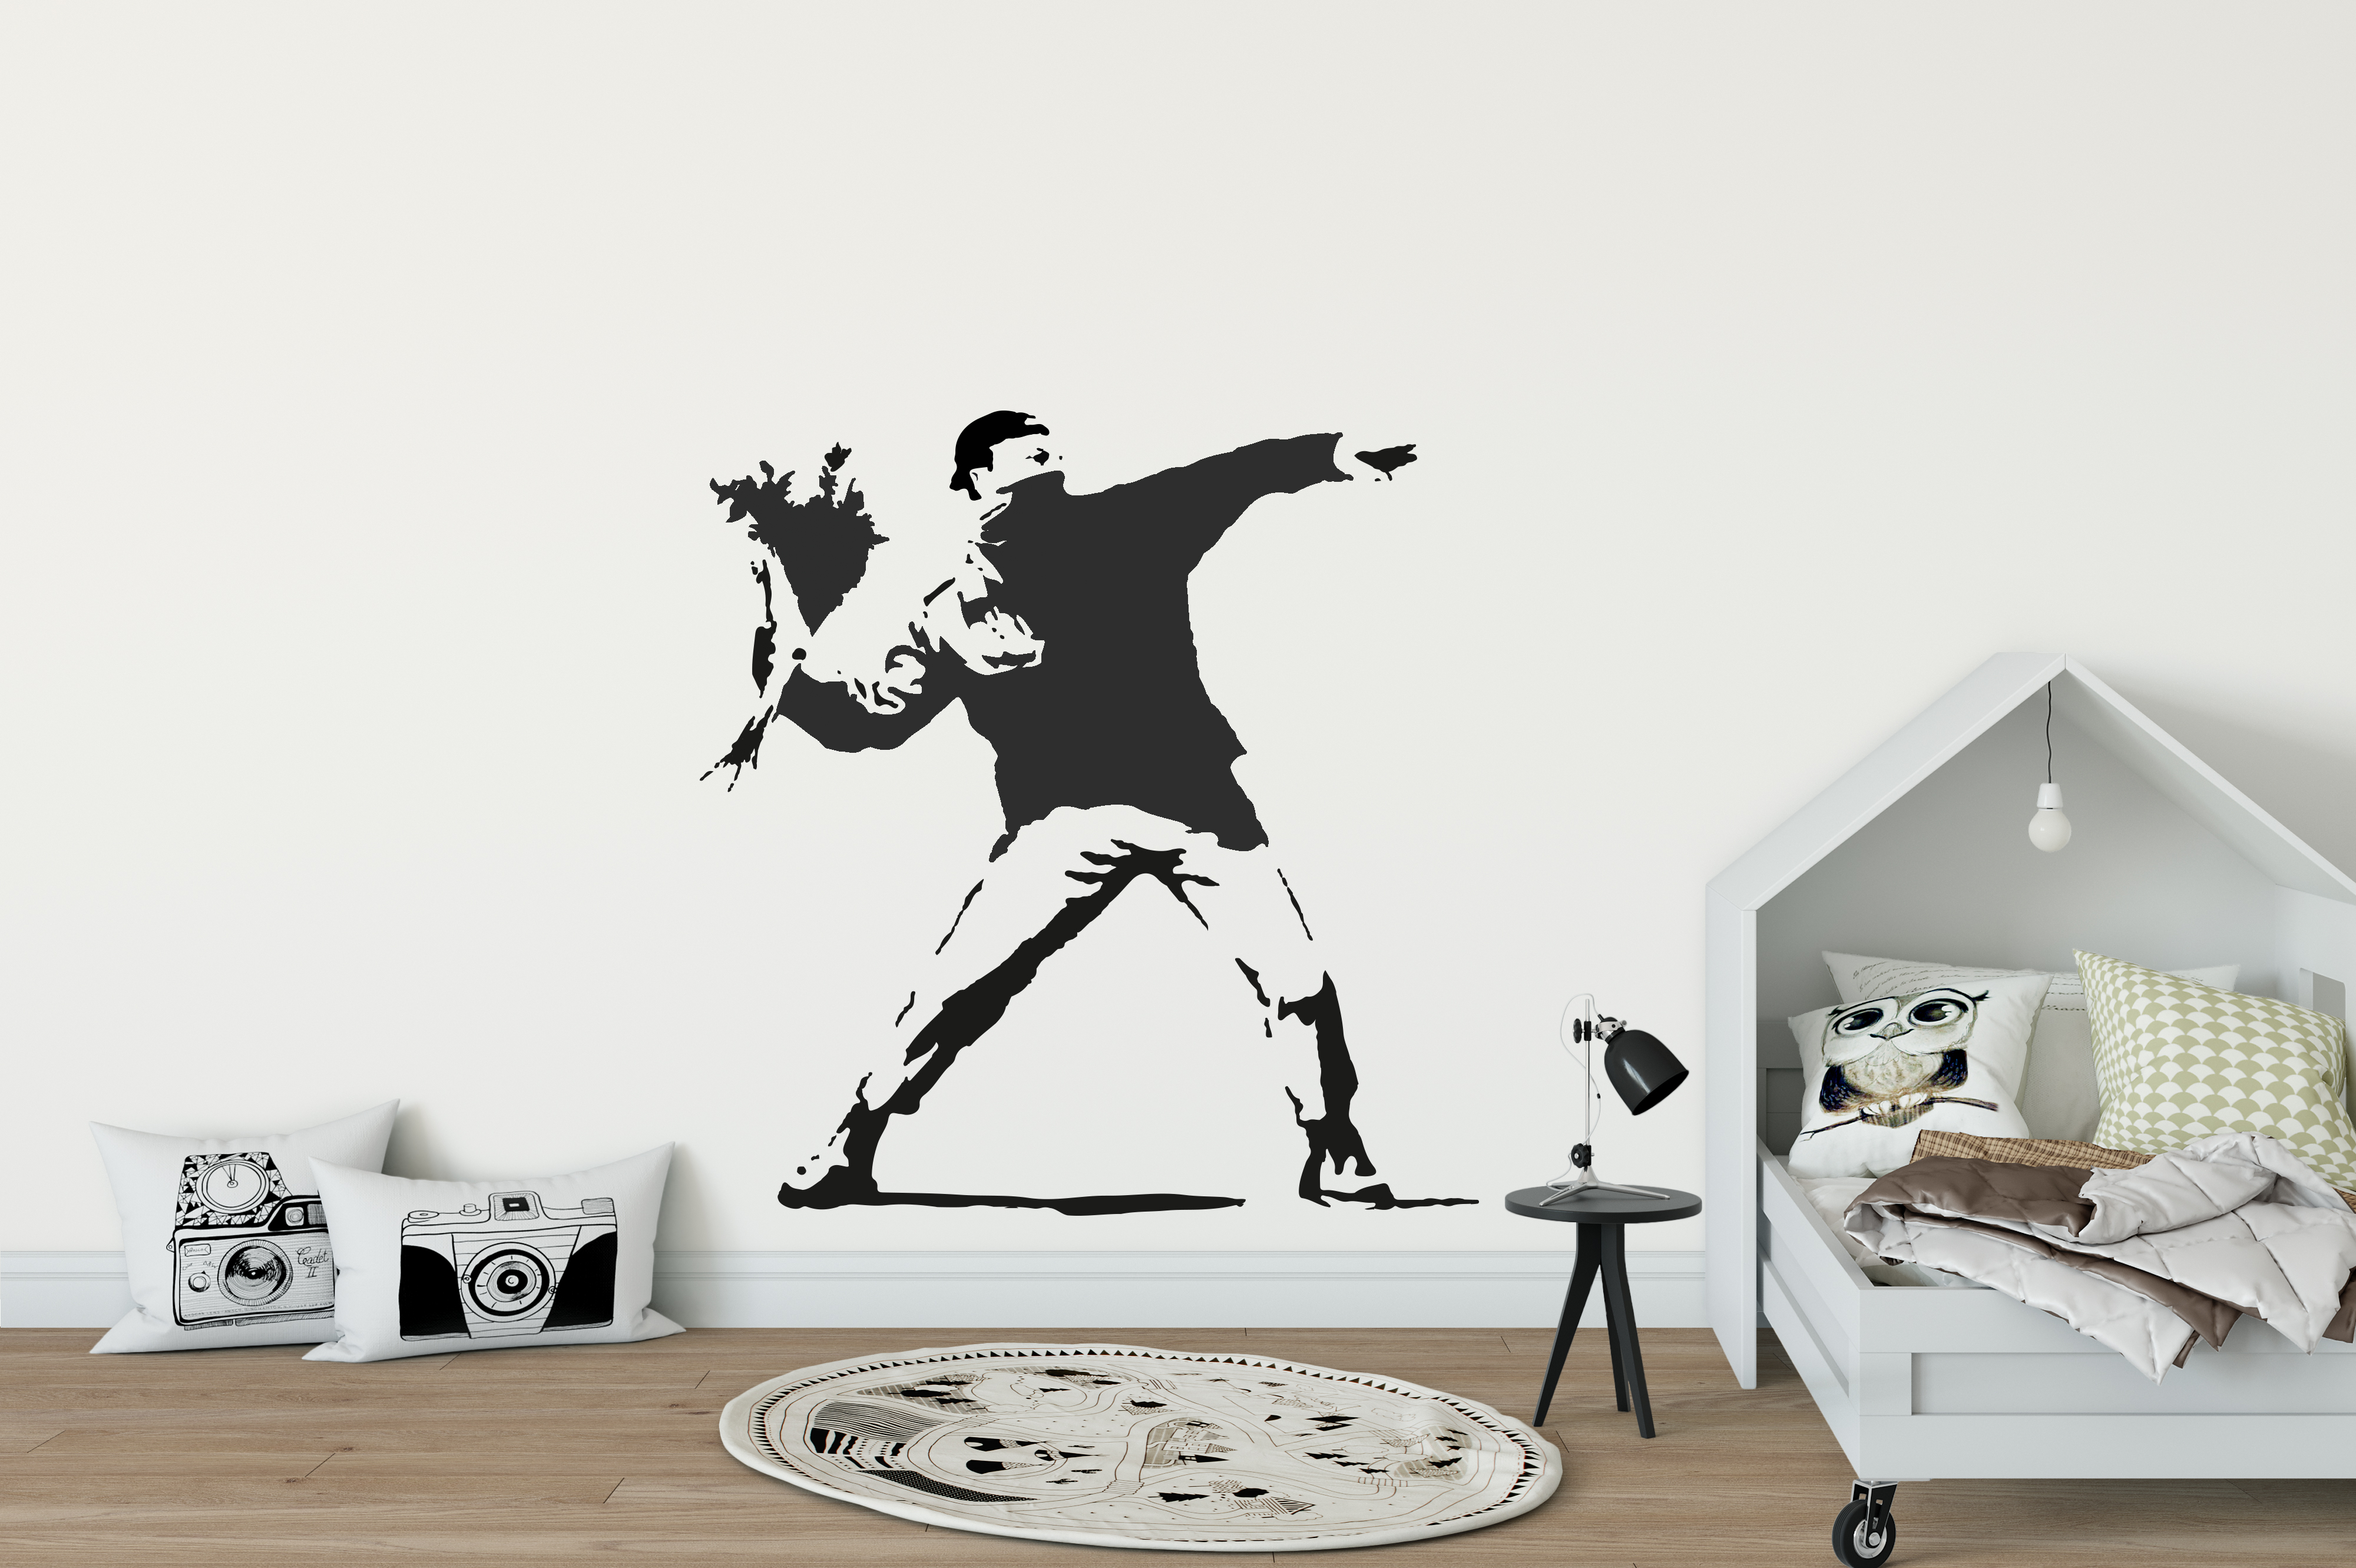 Charming Banksy Man Throwing Flowers Wall Sticker